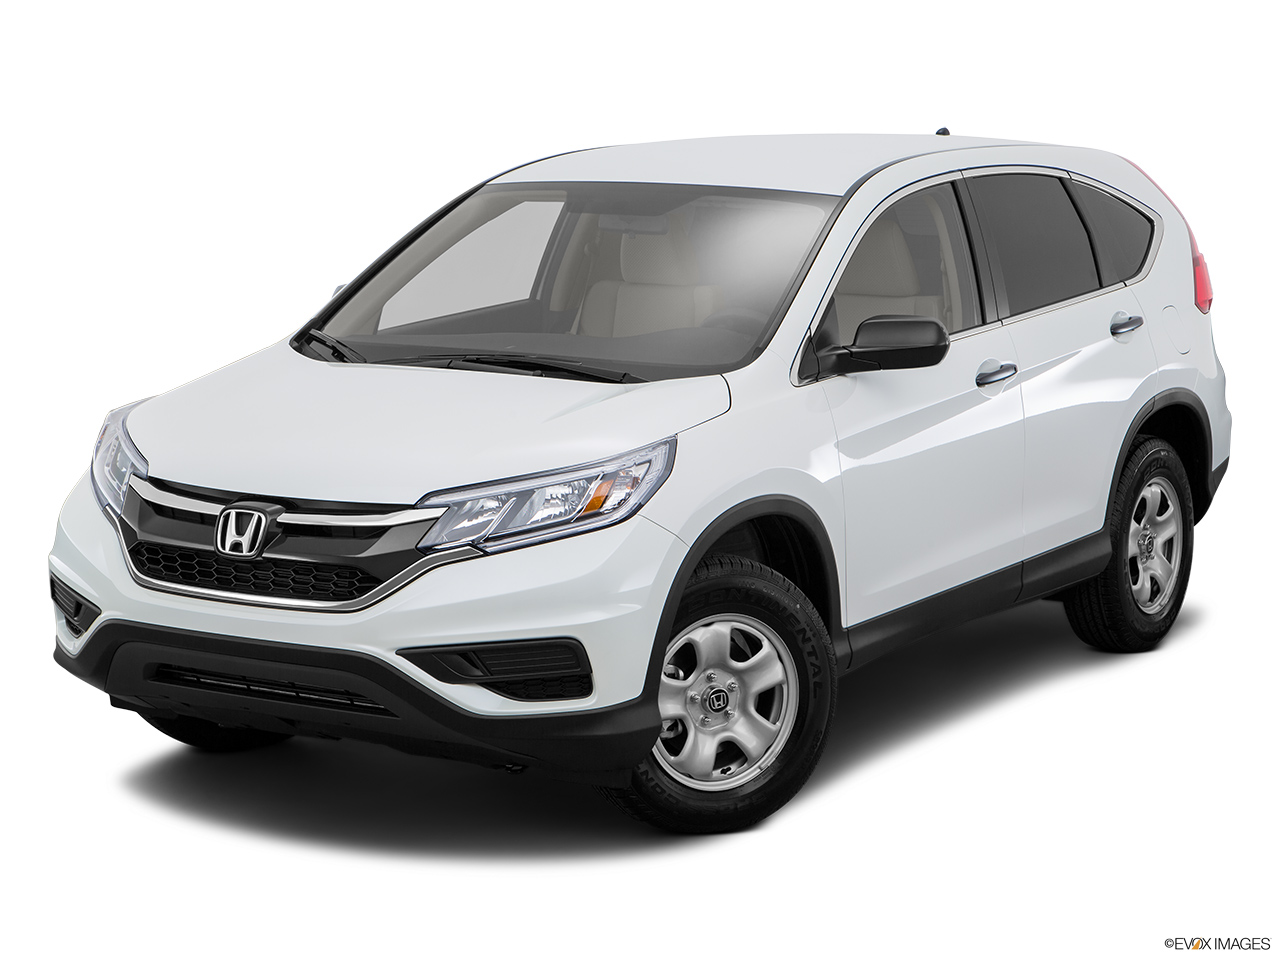 Honda crv 2016 2 4 lx 2wd in saudi arabia new car prices for Honda crv price